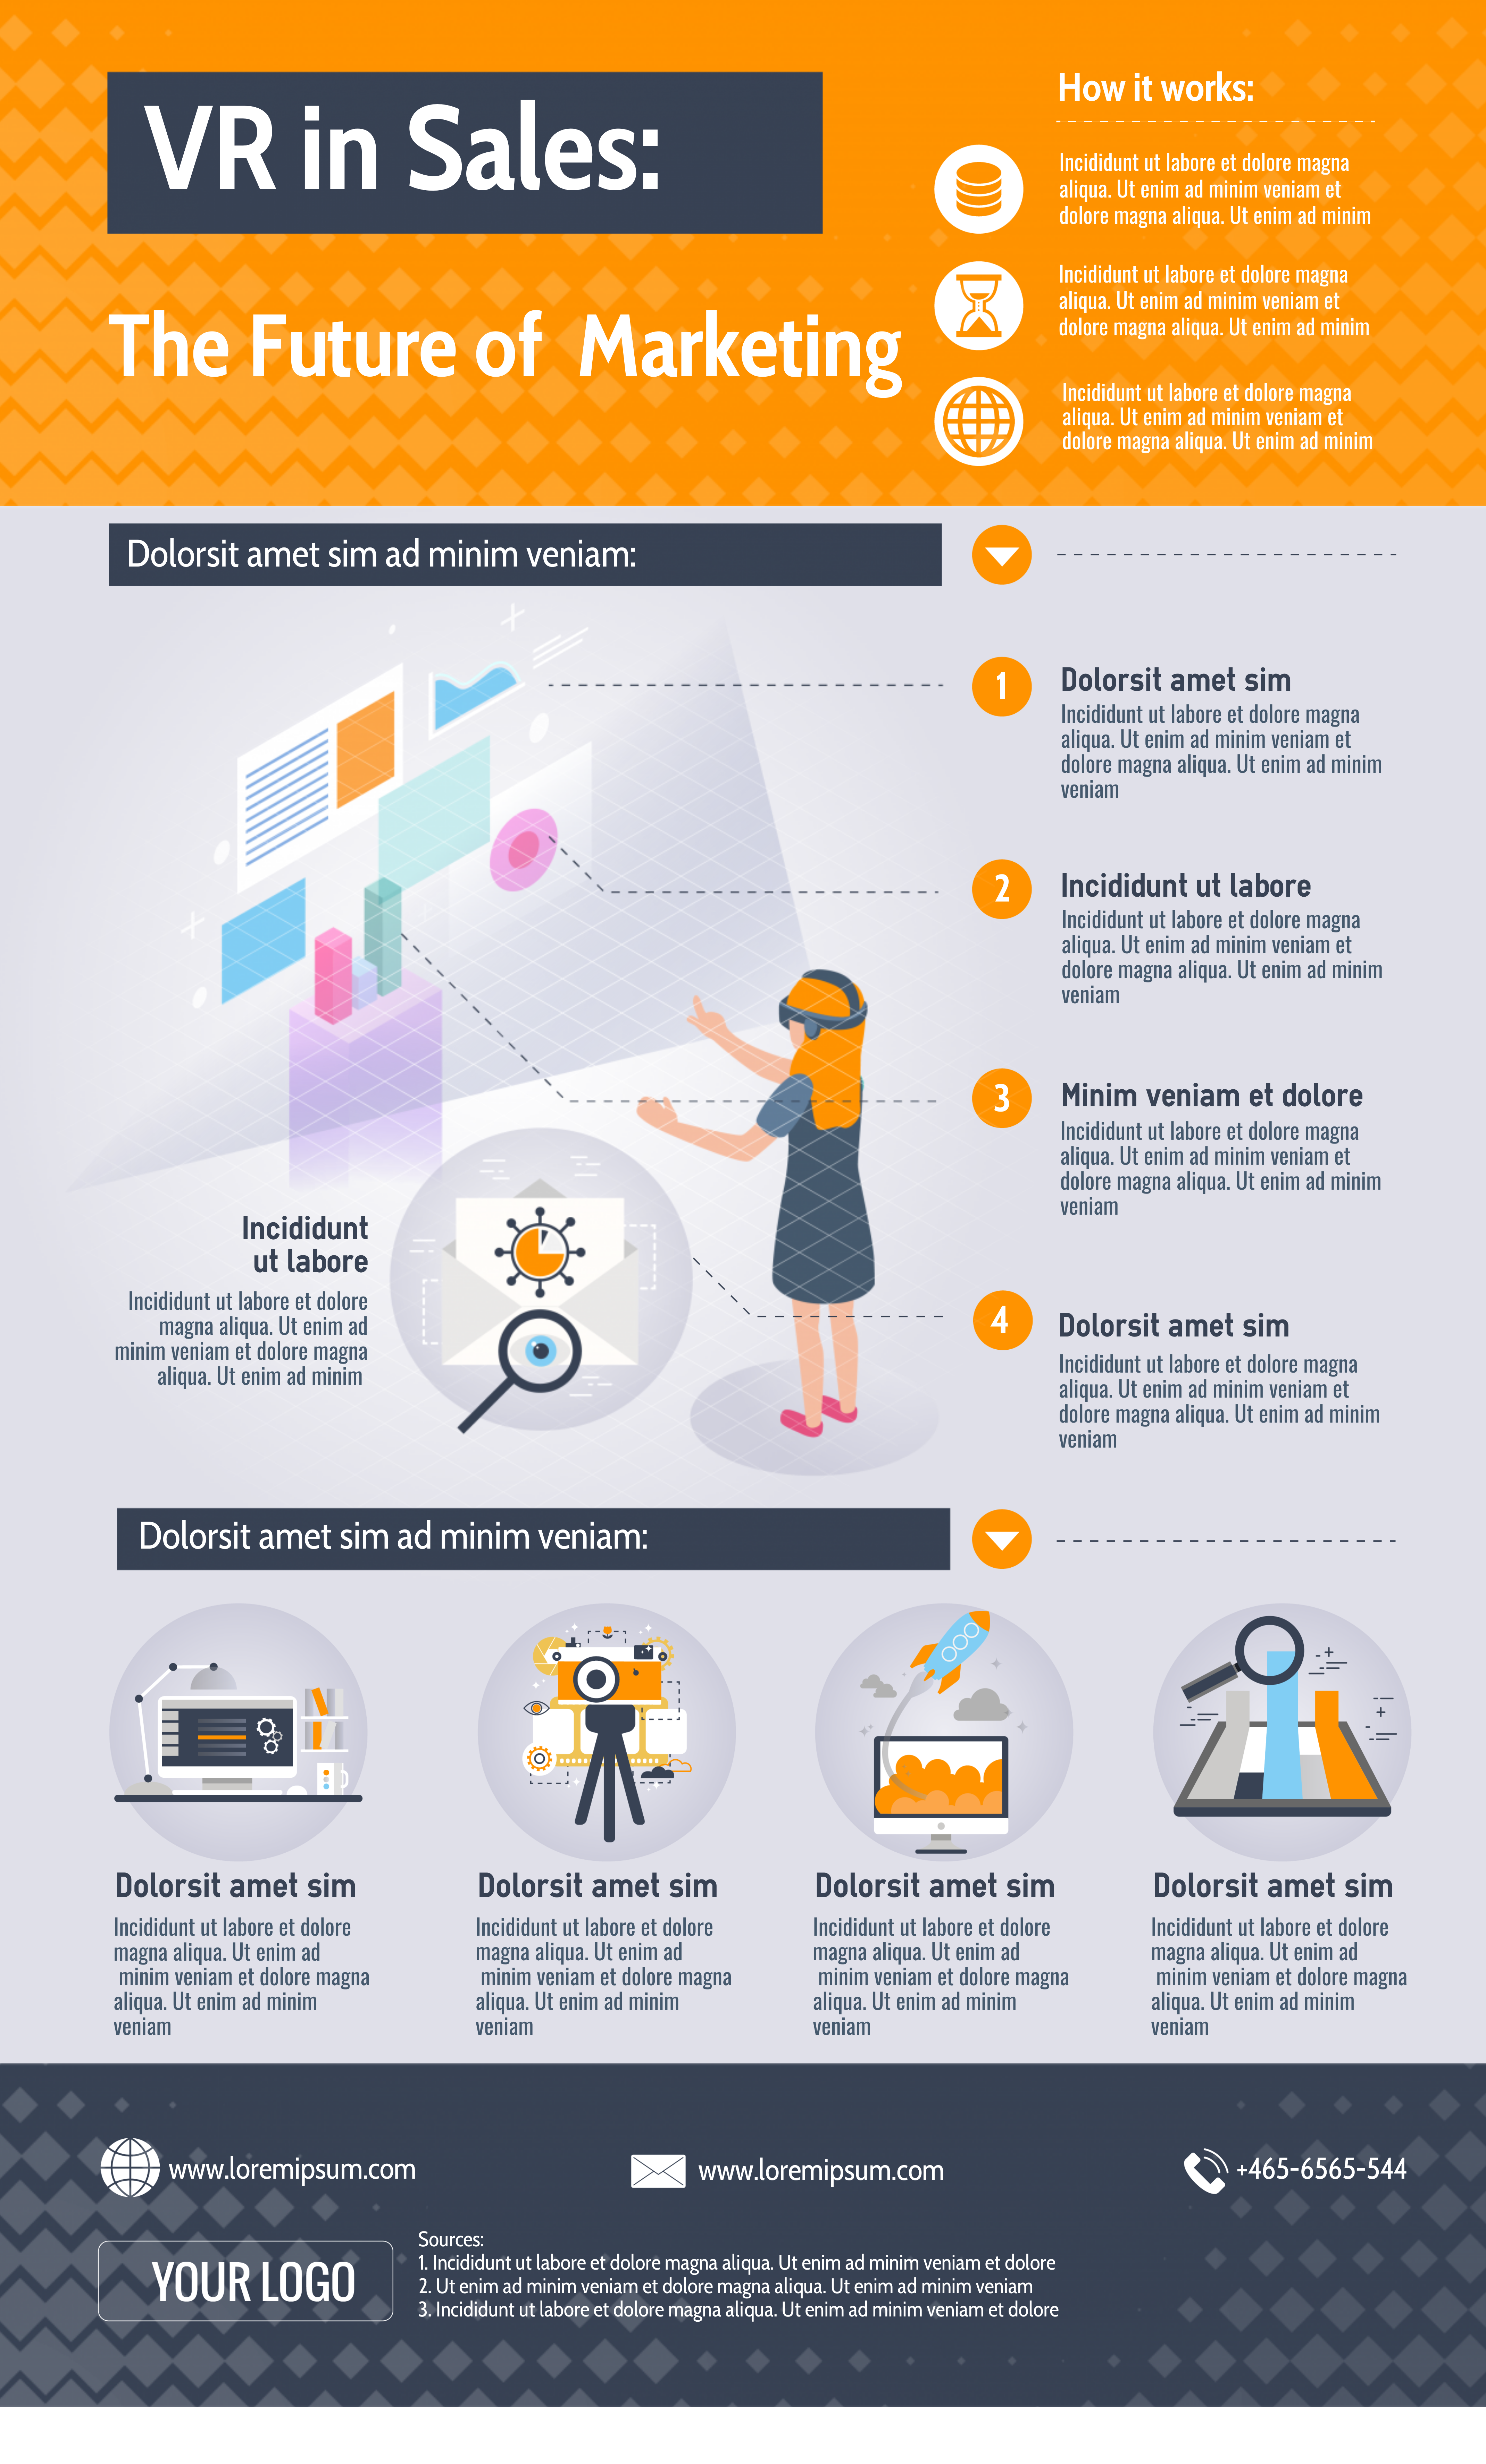 VR in sales infographic template